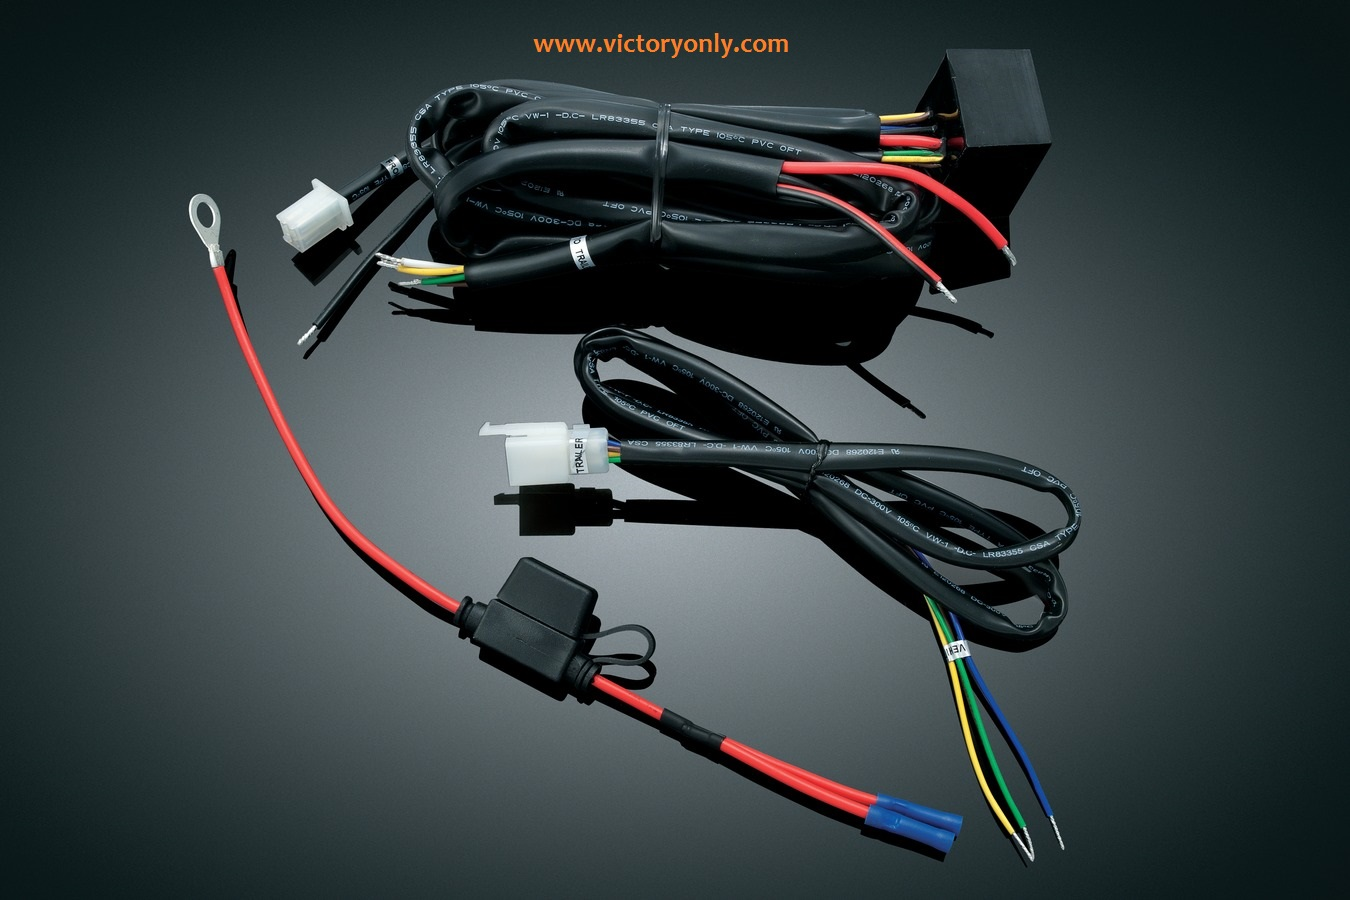 trailer wiring harnesses for victory motorcycle custom victory kingpin wiring harness custom honda civic wiring harness